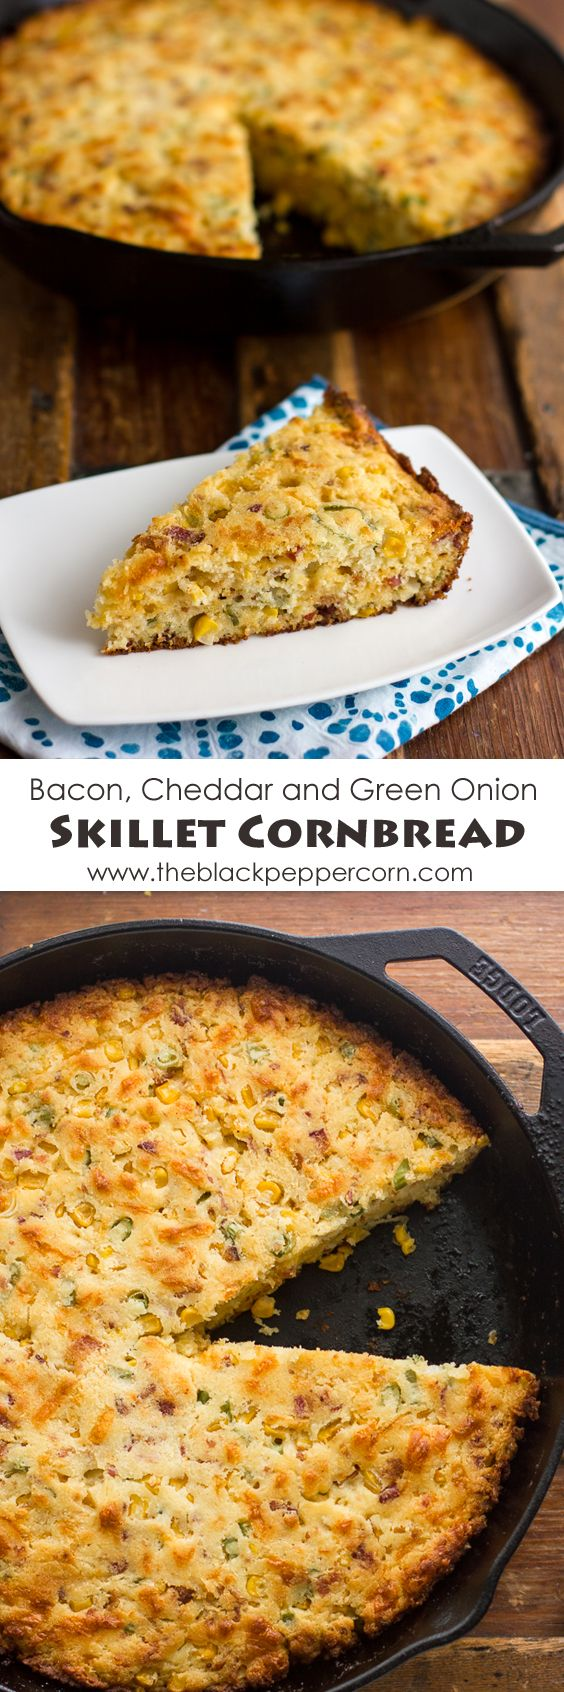 Skillet+Cornbread+with+Bacon+Cheddar+and+Green+Onions